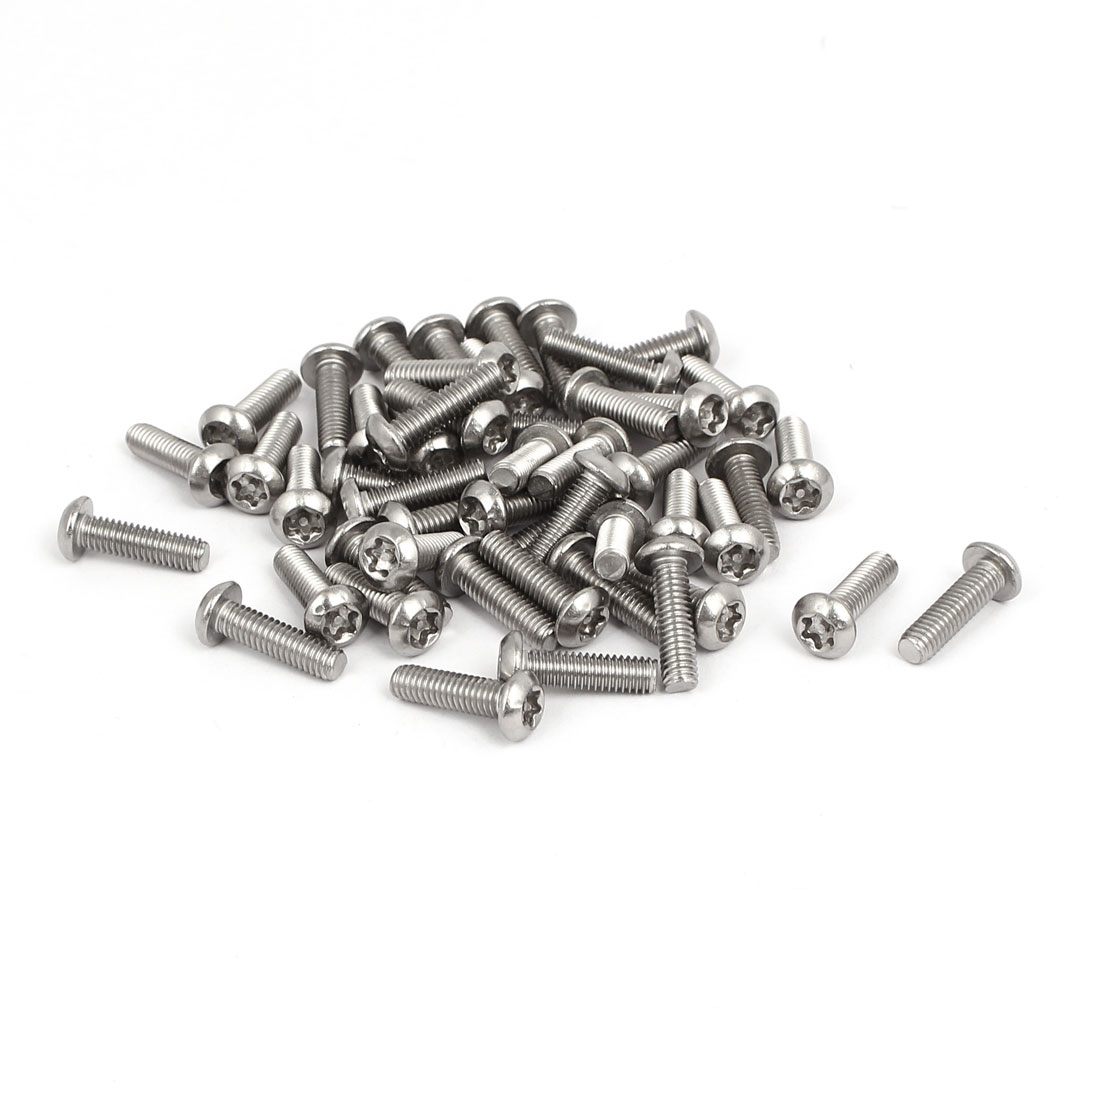 M4x14mm 304 Stainless Steel Button Head Torx Tamper Resistant Screws 50pcs